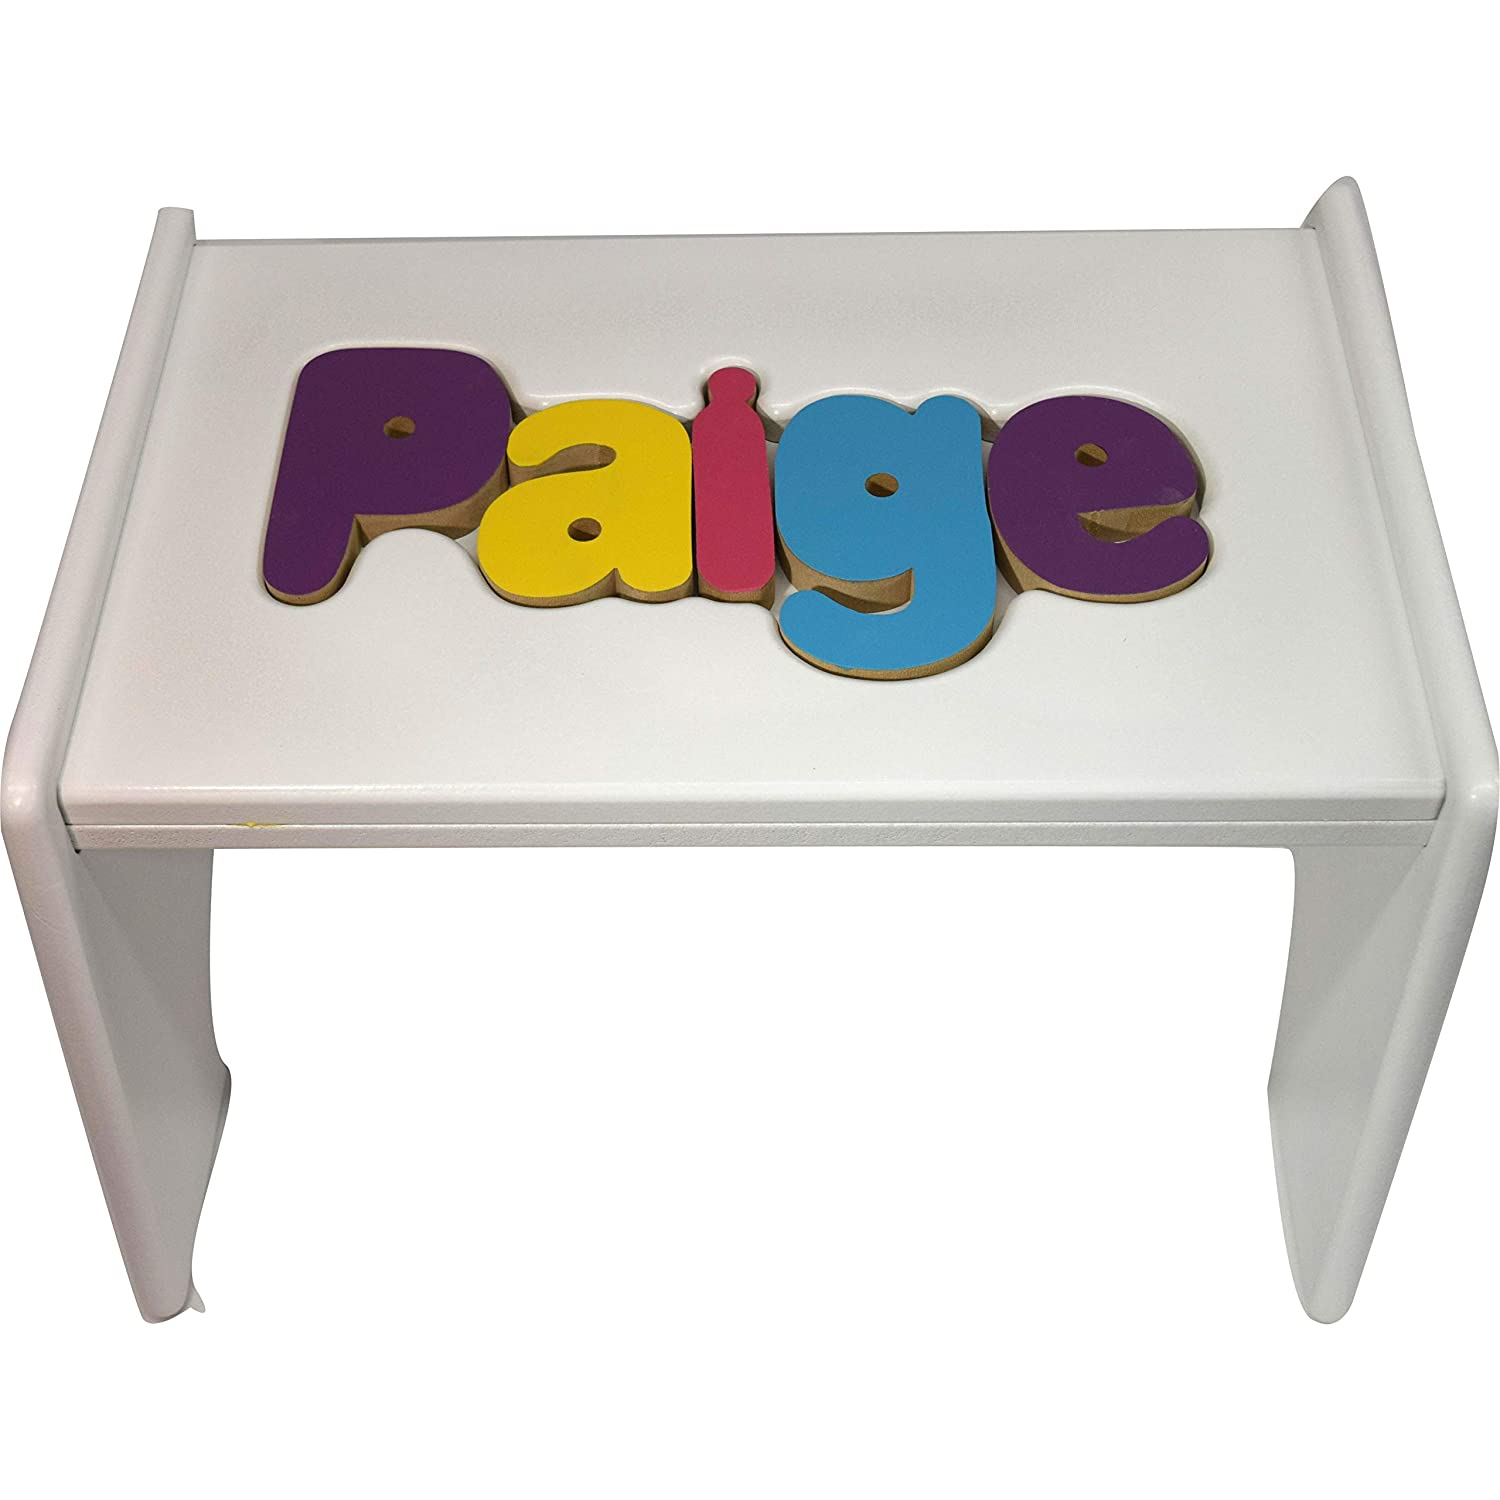 babykidsbargains Personalized Wooden Puzzle Stools- Stool Color: White, Letter Color: Pastel, 9-12 Letters Baby Kids Bargains